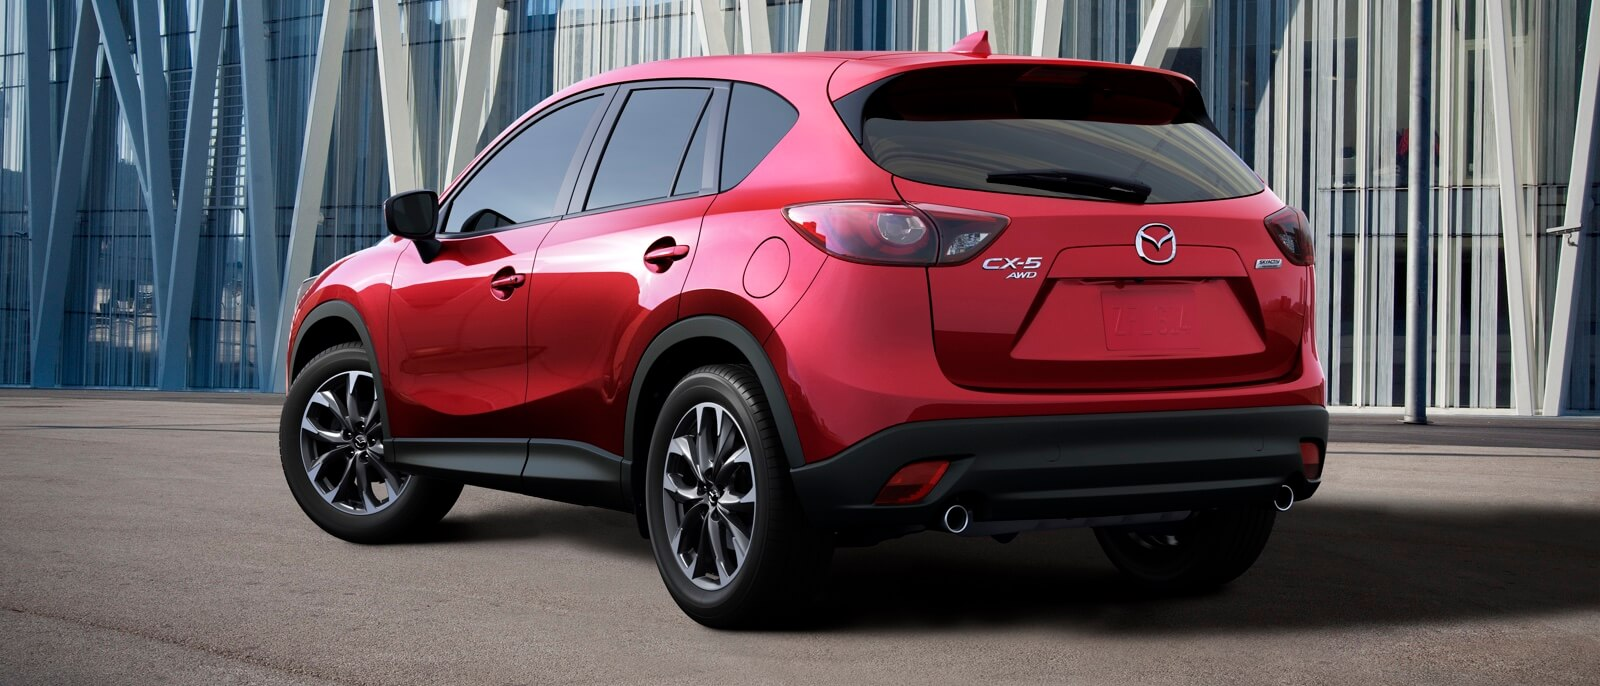 red 2016 Mazda CX-5 parked